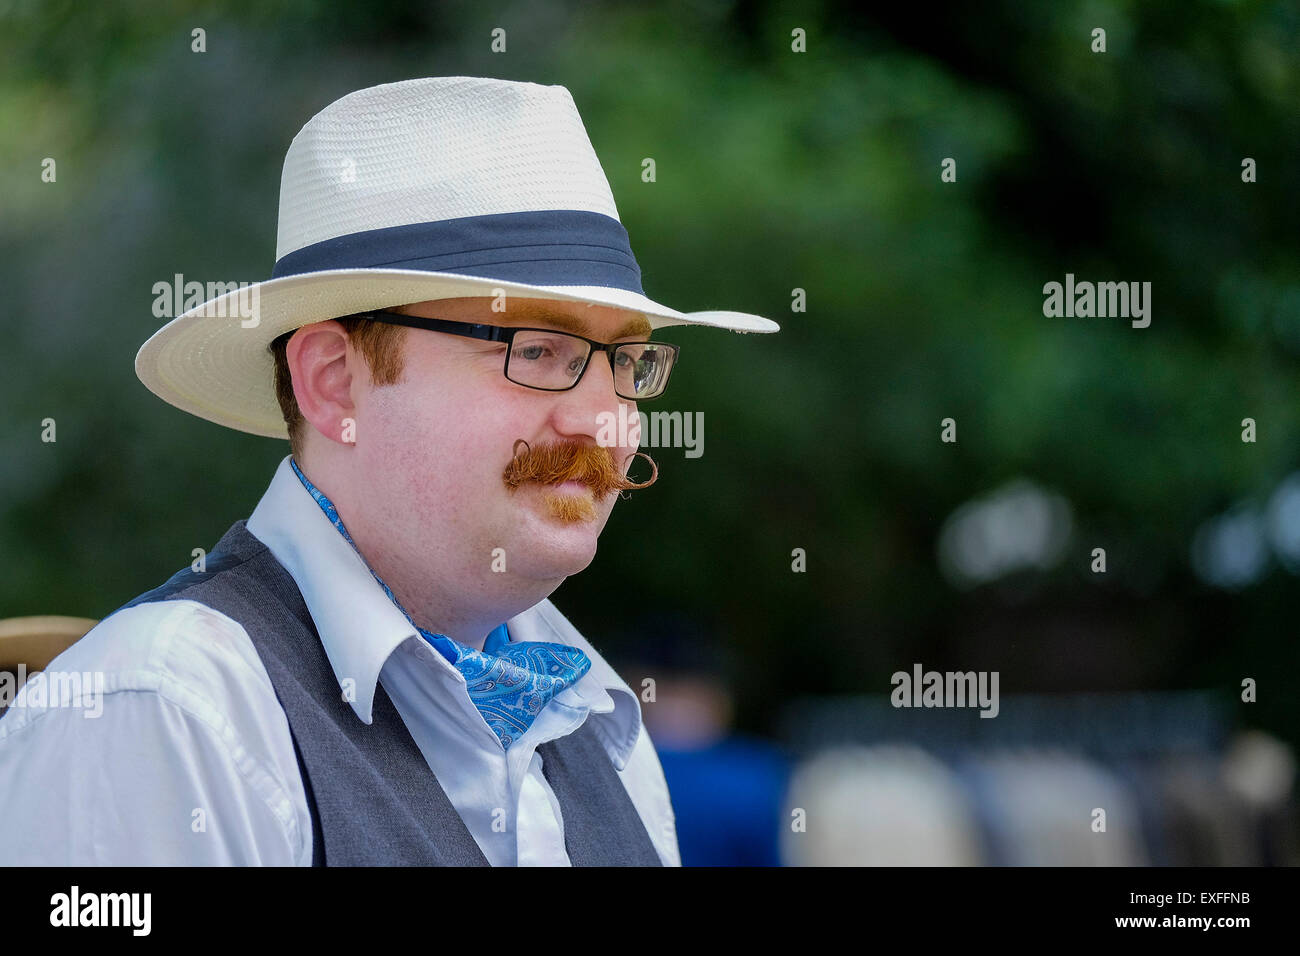 A chap at The Chap Olympiad in Bloomsbury, London. - Stock Image